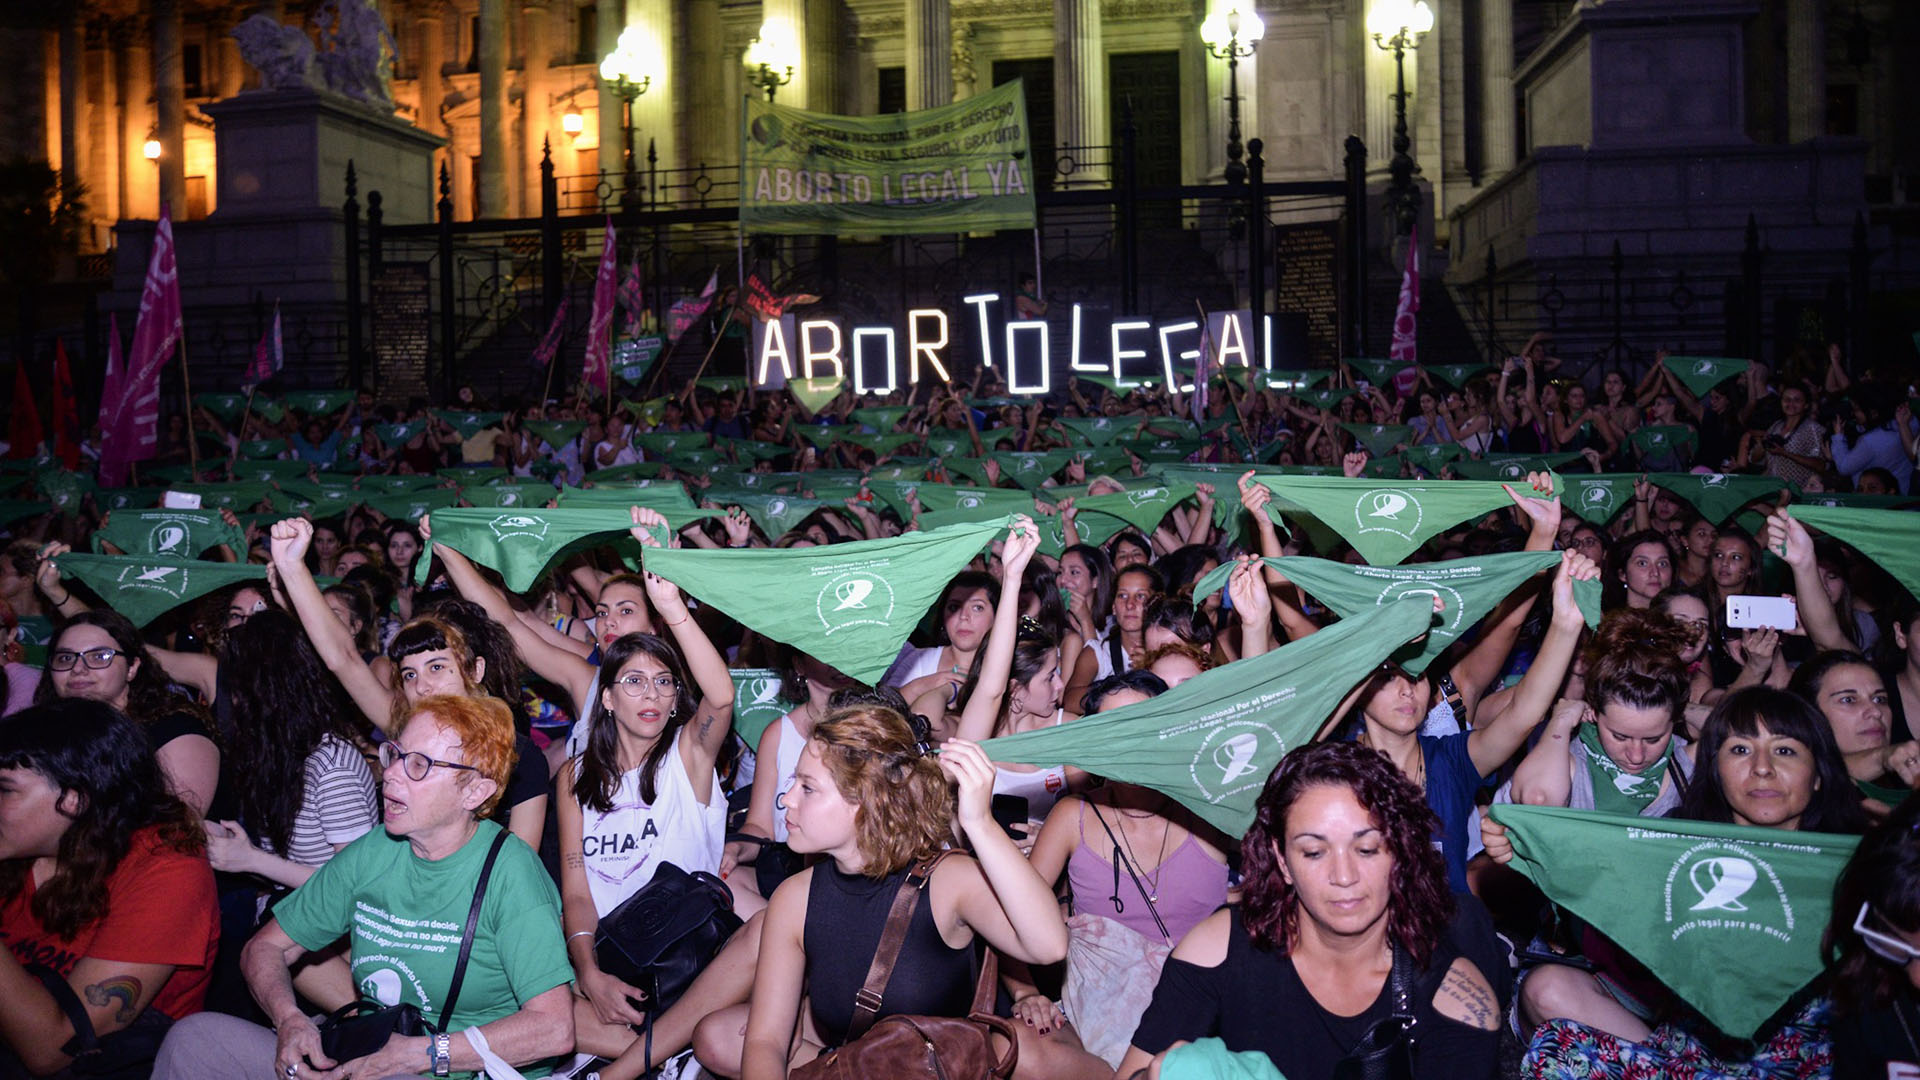 Panuelazo-marcha-protesta-aborto-legal-Congreso-21